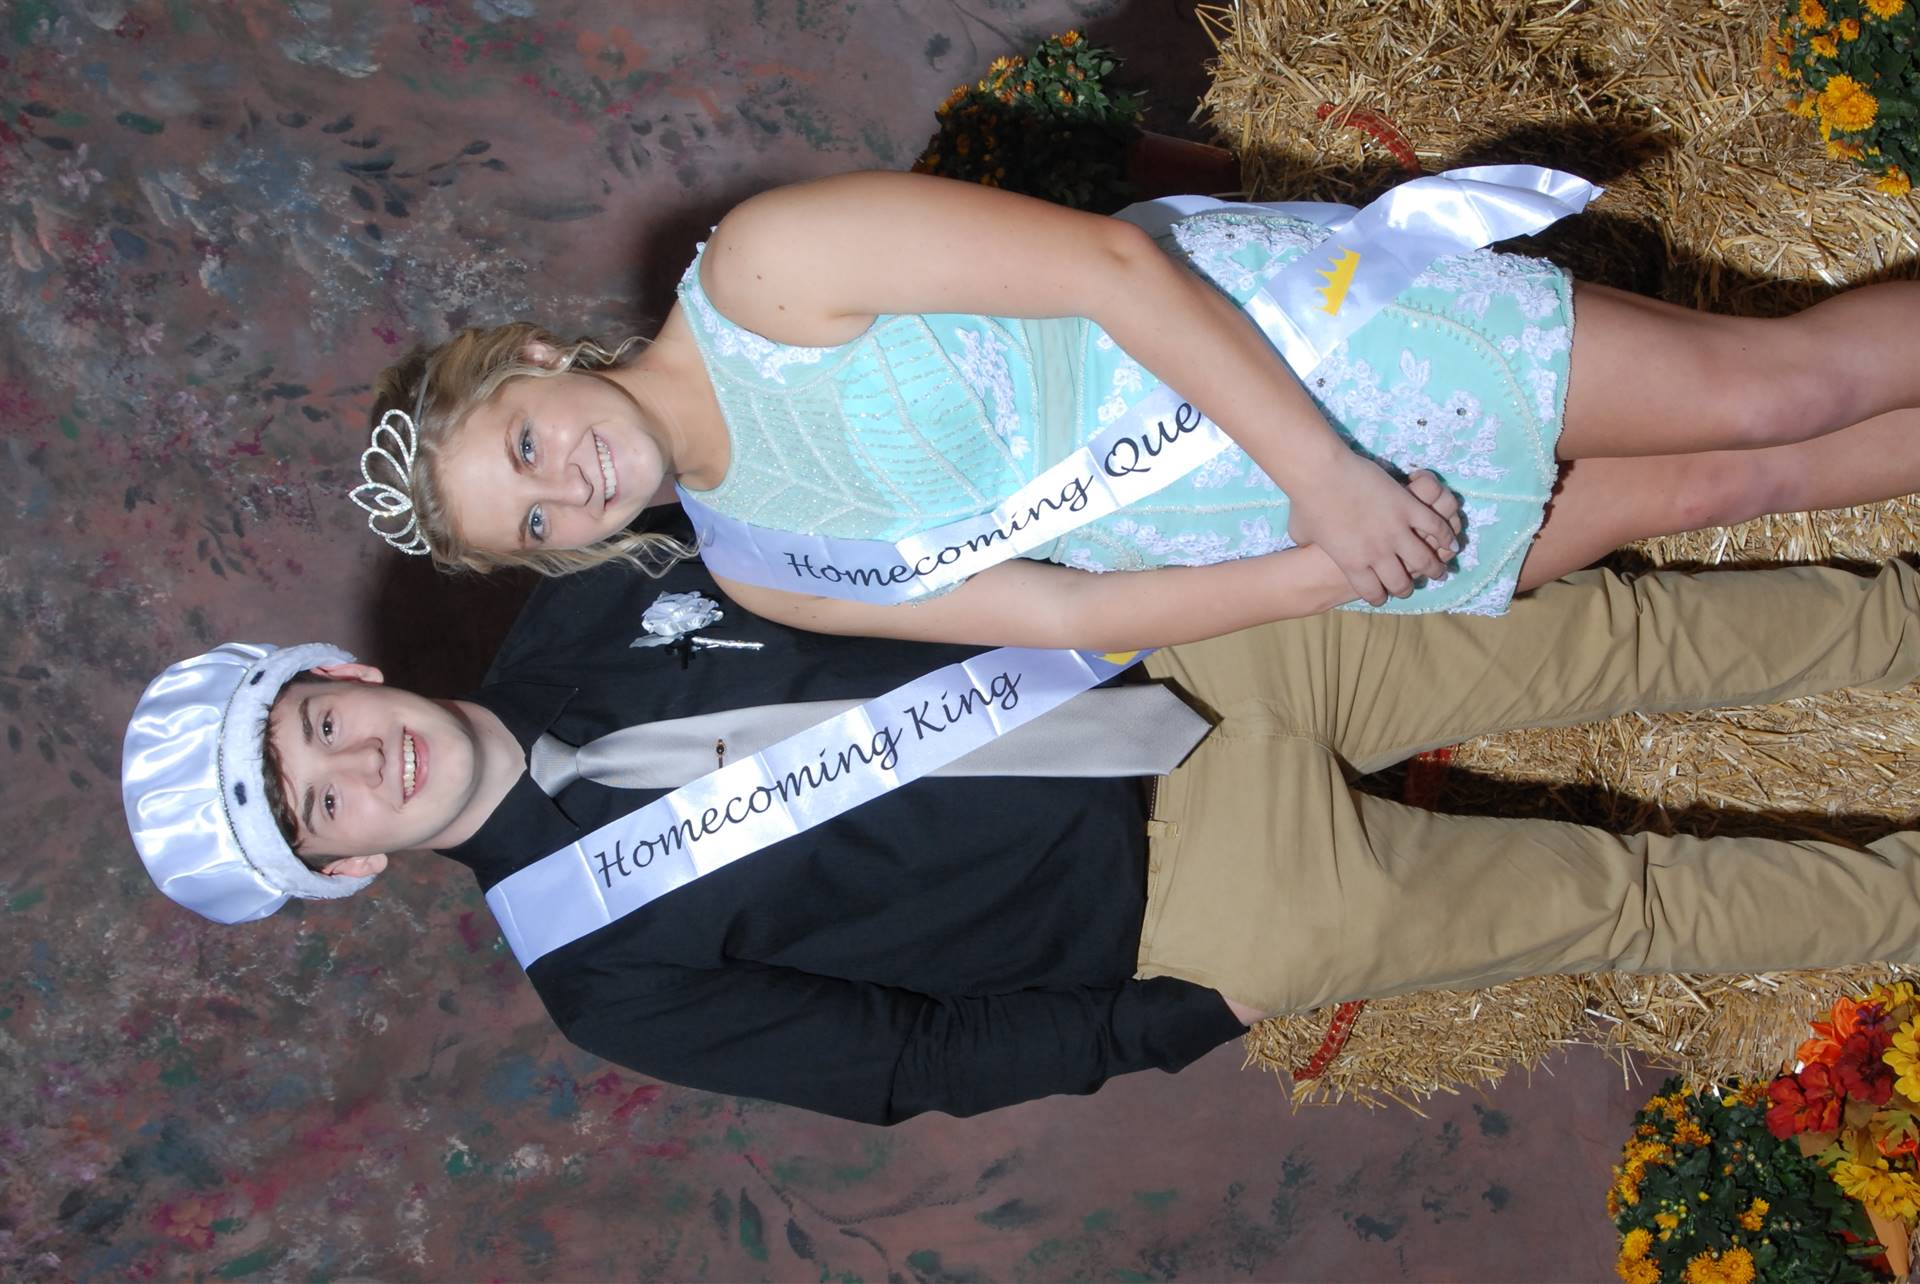 Homecoming Queen Kelsey Ward and King Cameron Poe